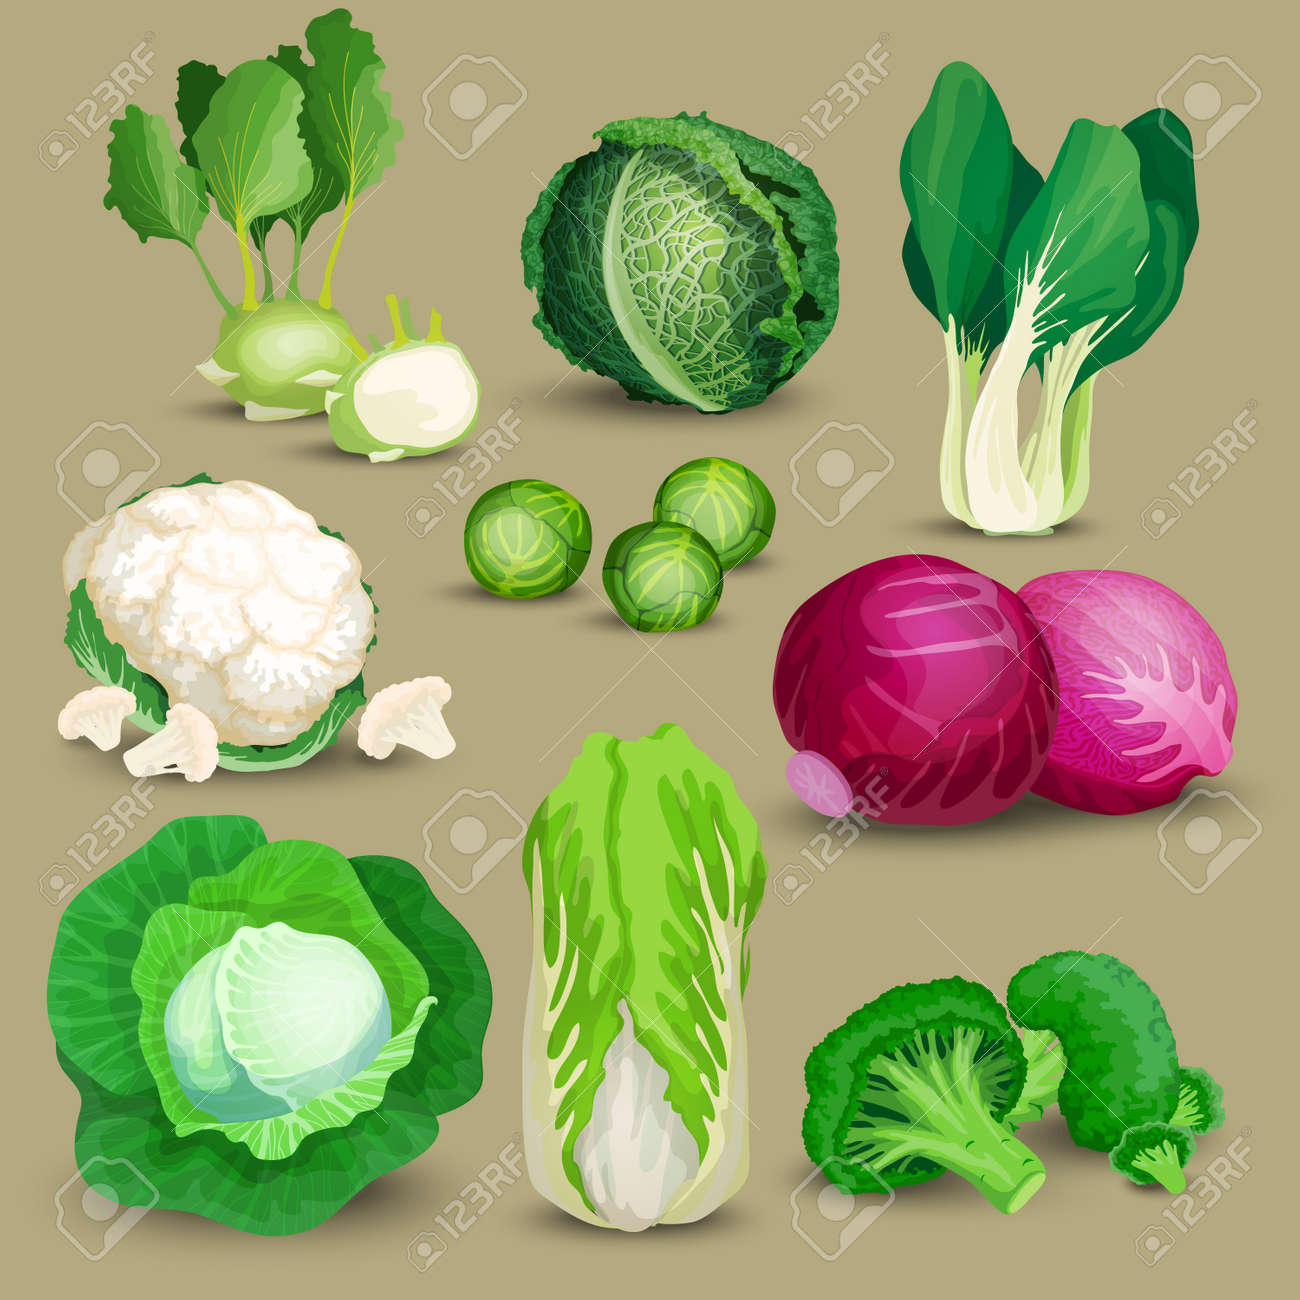 Vegetable set with broccoli, kohlrabi and other different cabbages. Vegetable set with cabbage, broccoli, kohlrabi, savoy, red, chinese, napa and brussels sprouts - 58881920